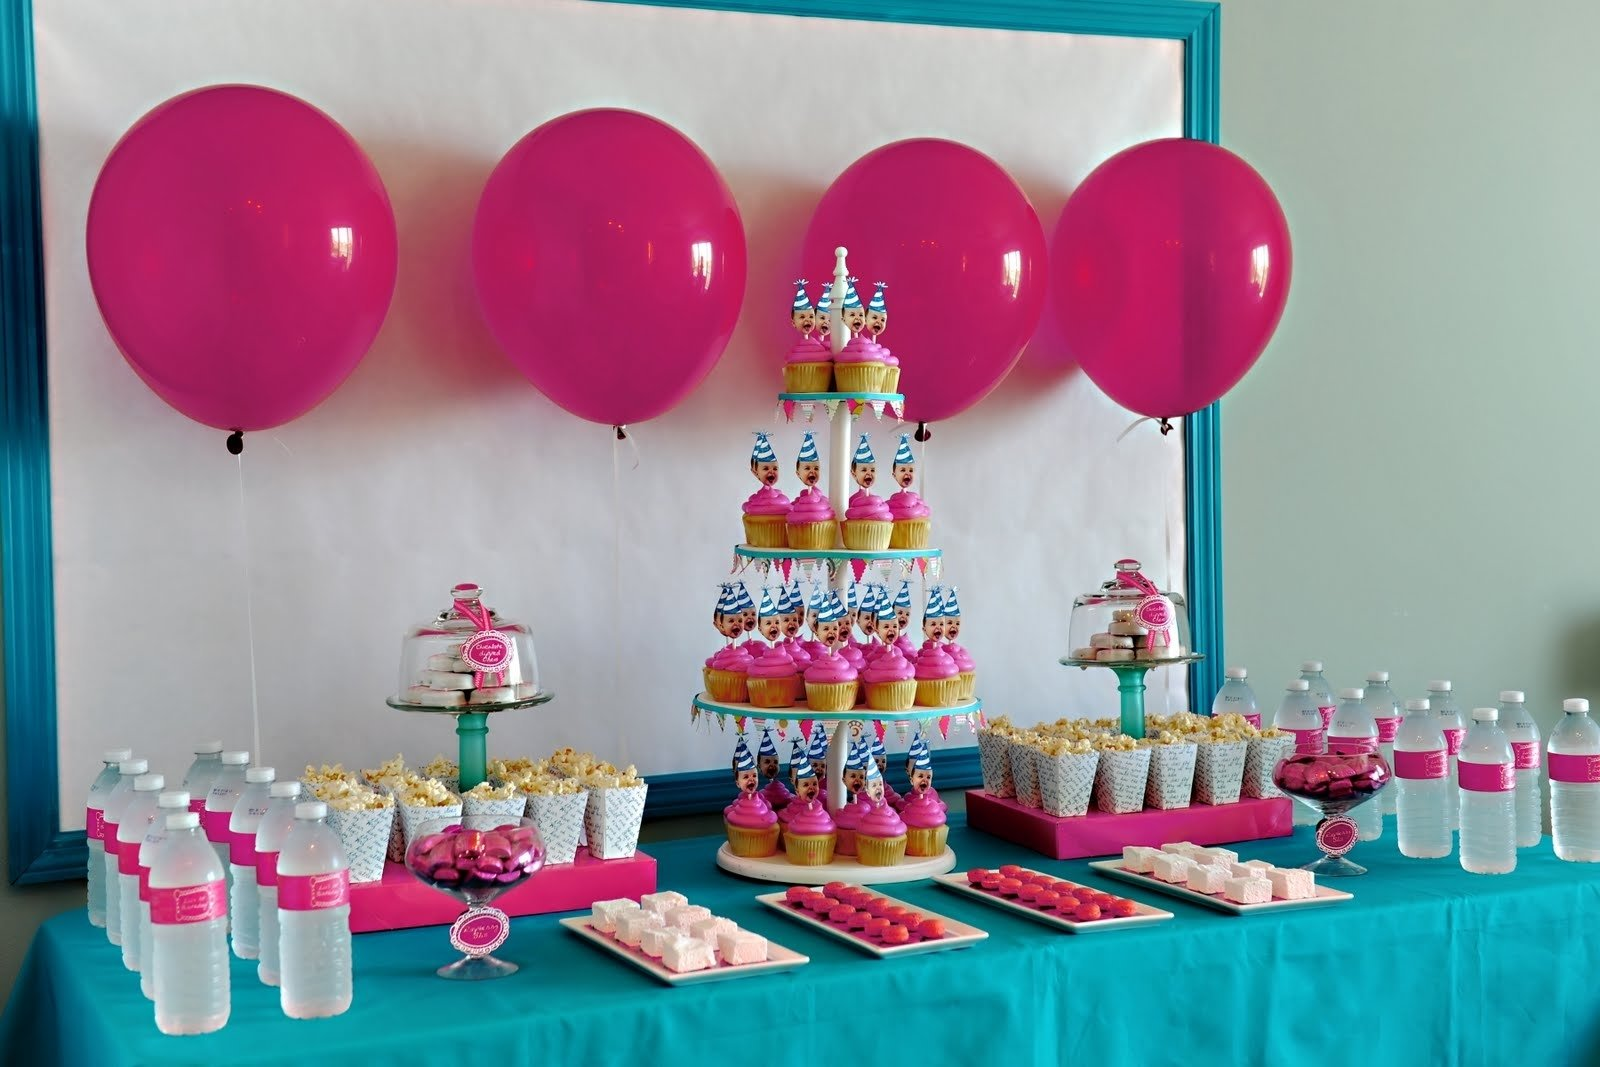 10 Best Birthday Party Ideas For 2 Year Old themes birthday a 2 year old birthday party ideas with 2 year old 14